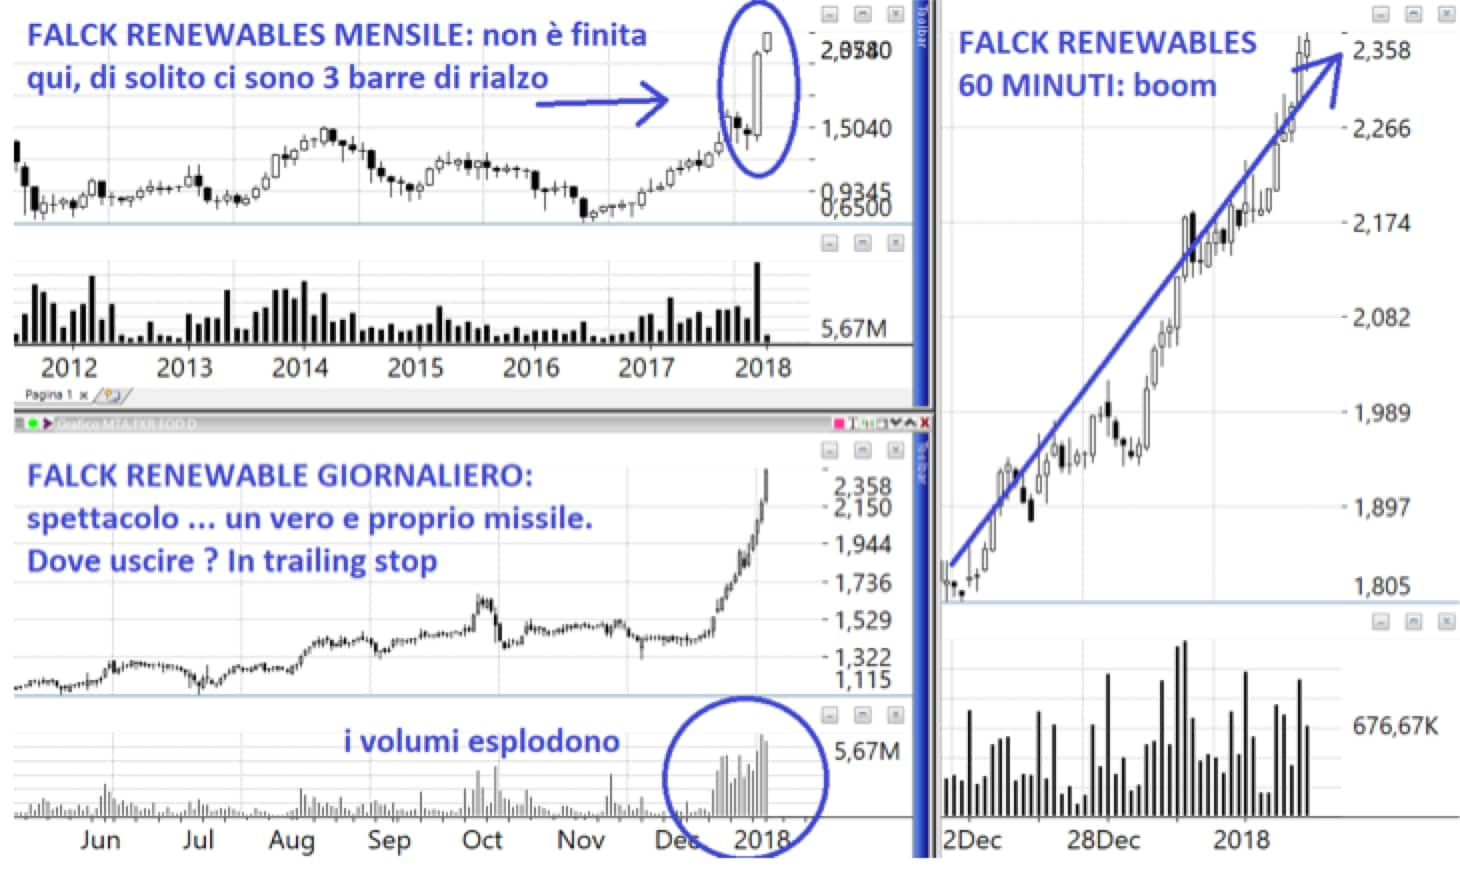 falck-renewables-grafico_1